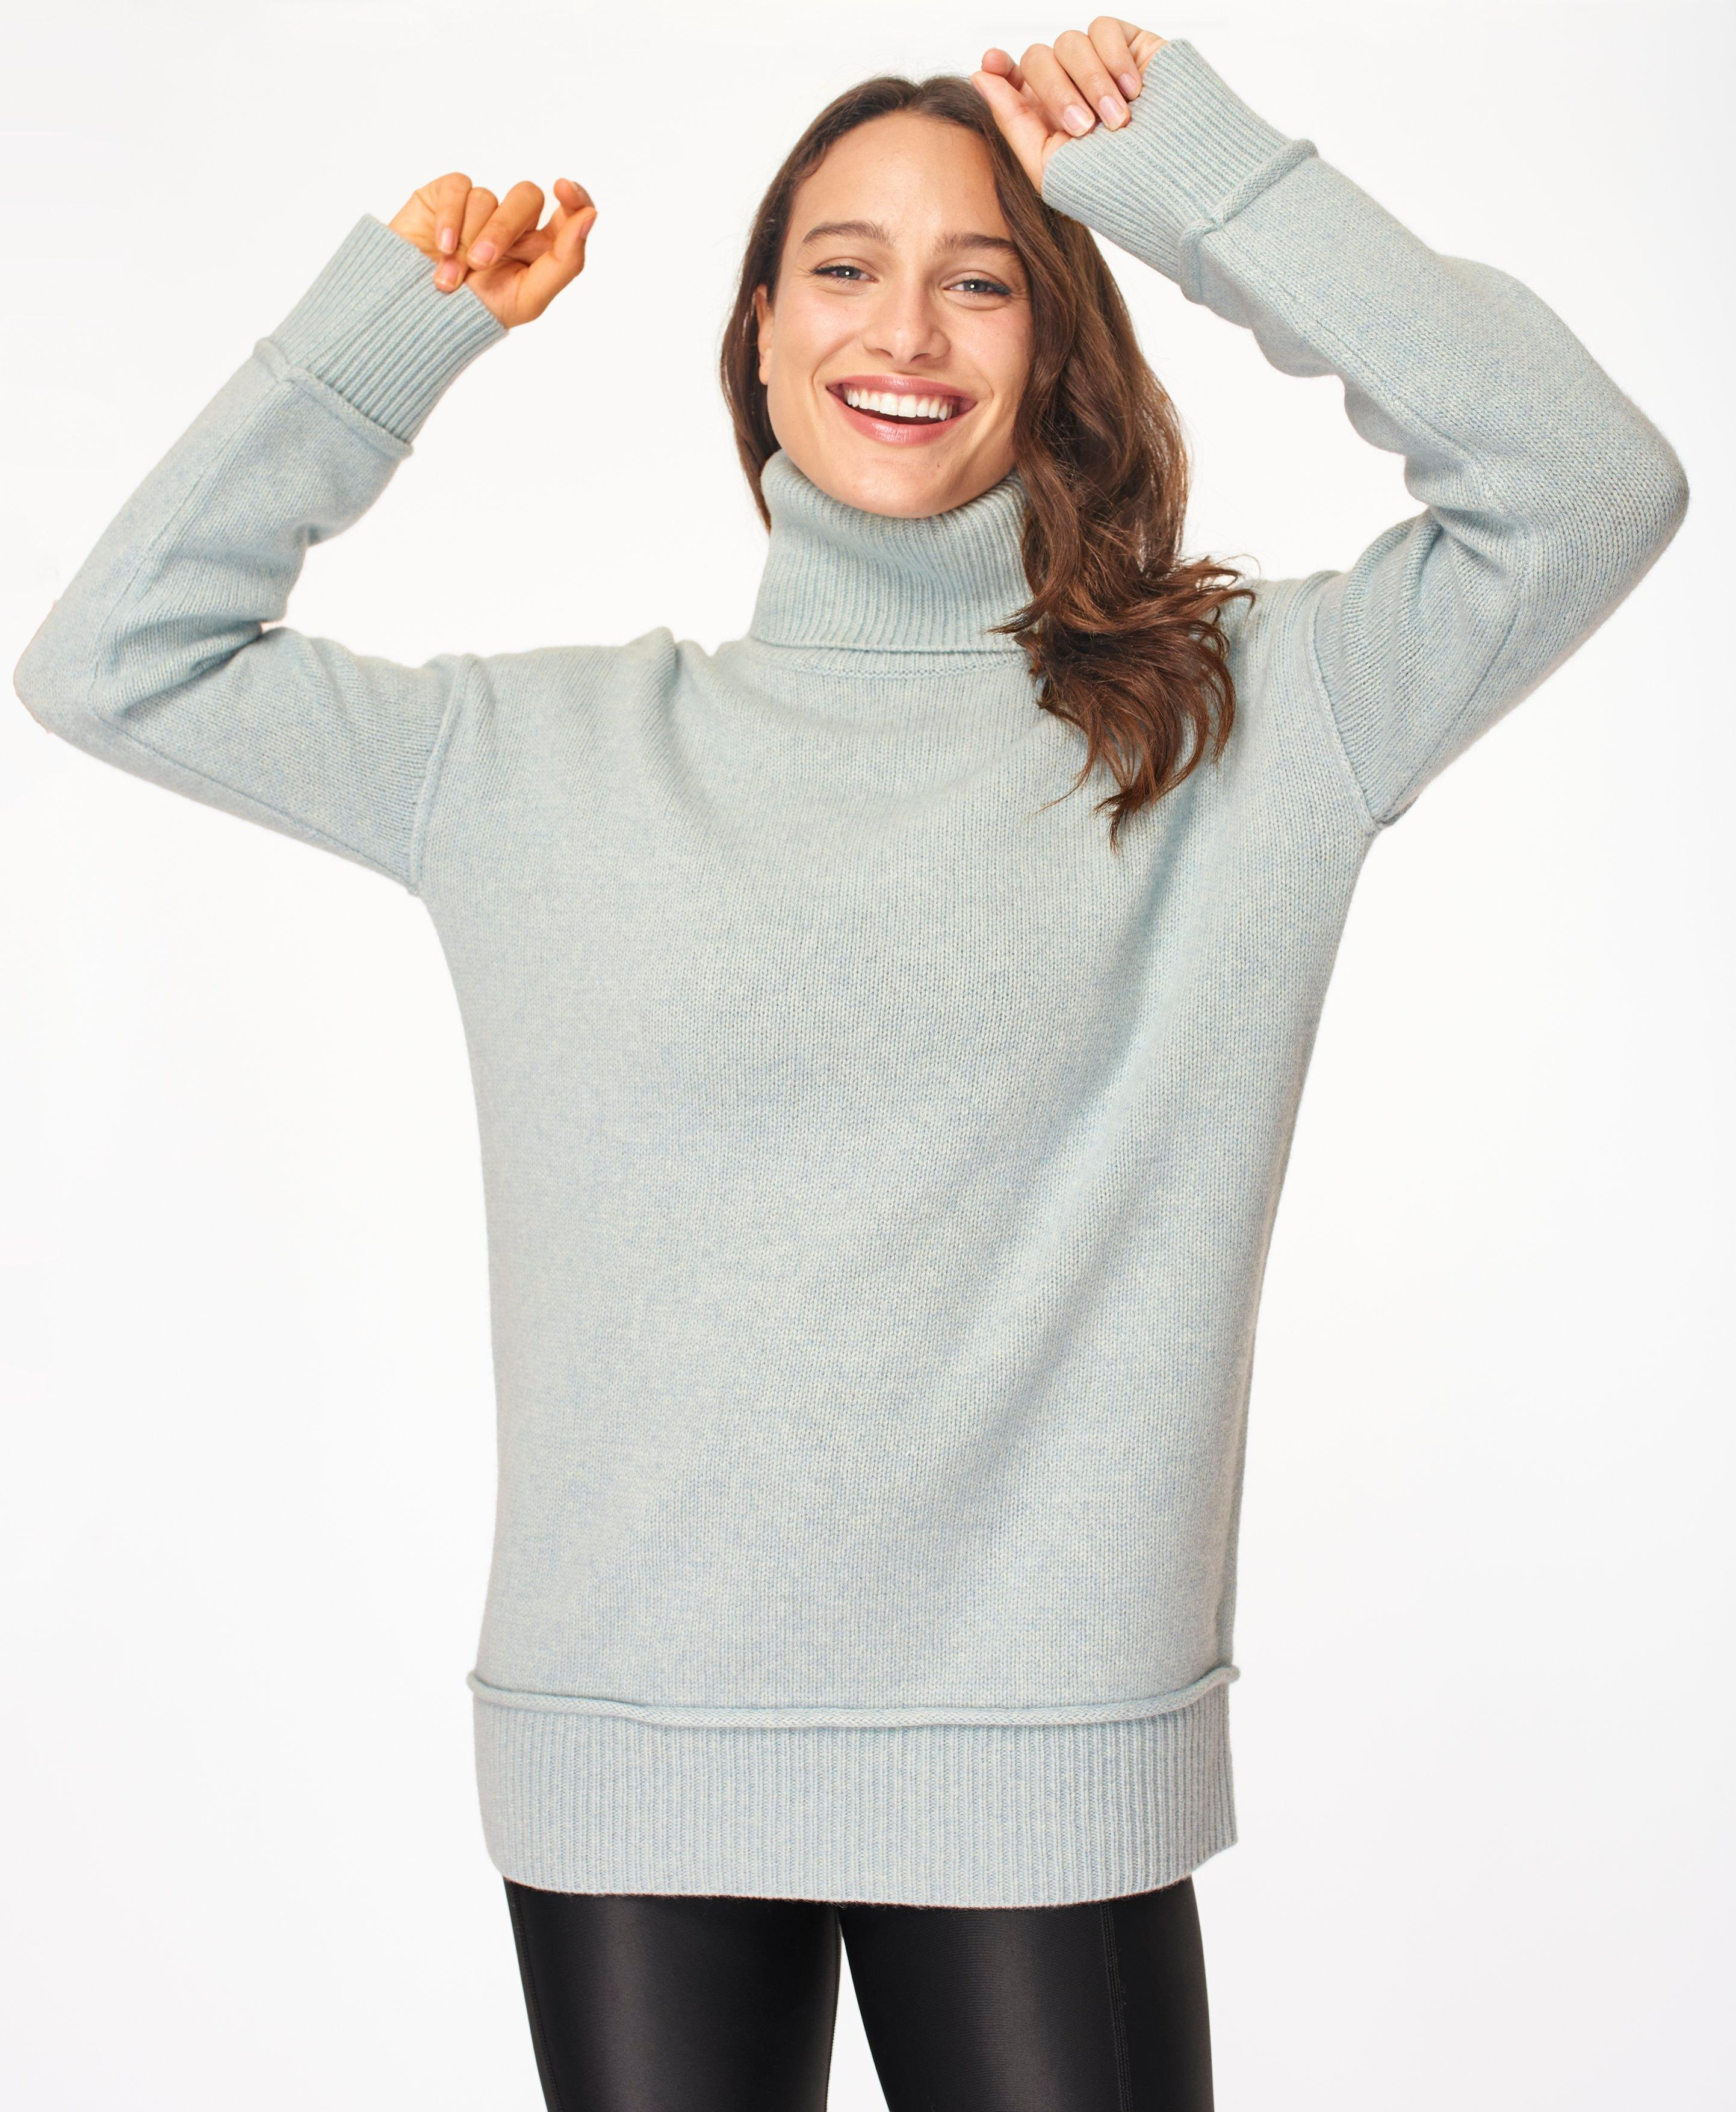 Elevate Mountain Wool Turtleneck Jumper, Air Blue | Sweaty Betty